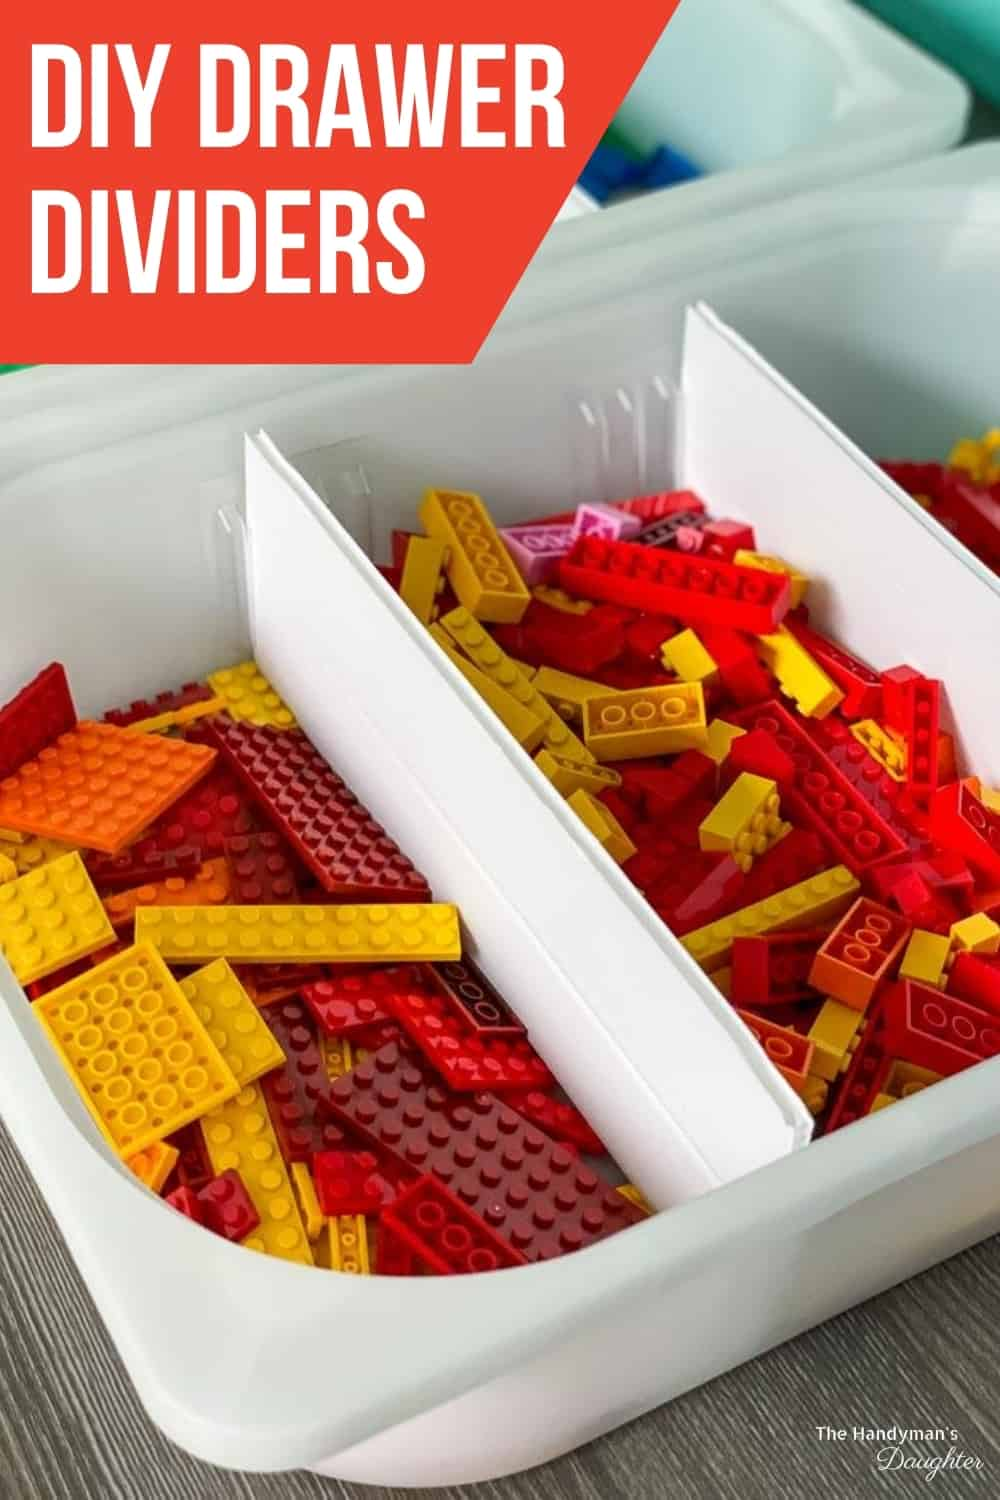 DIY drawer dividers with red Lego pieces sorted by size